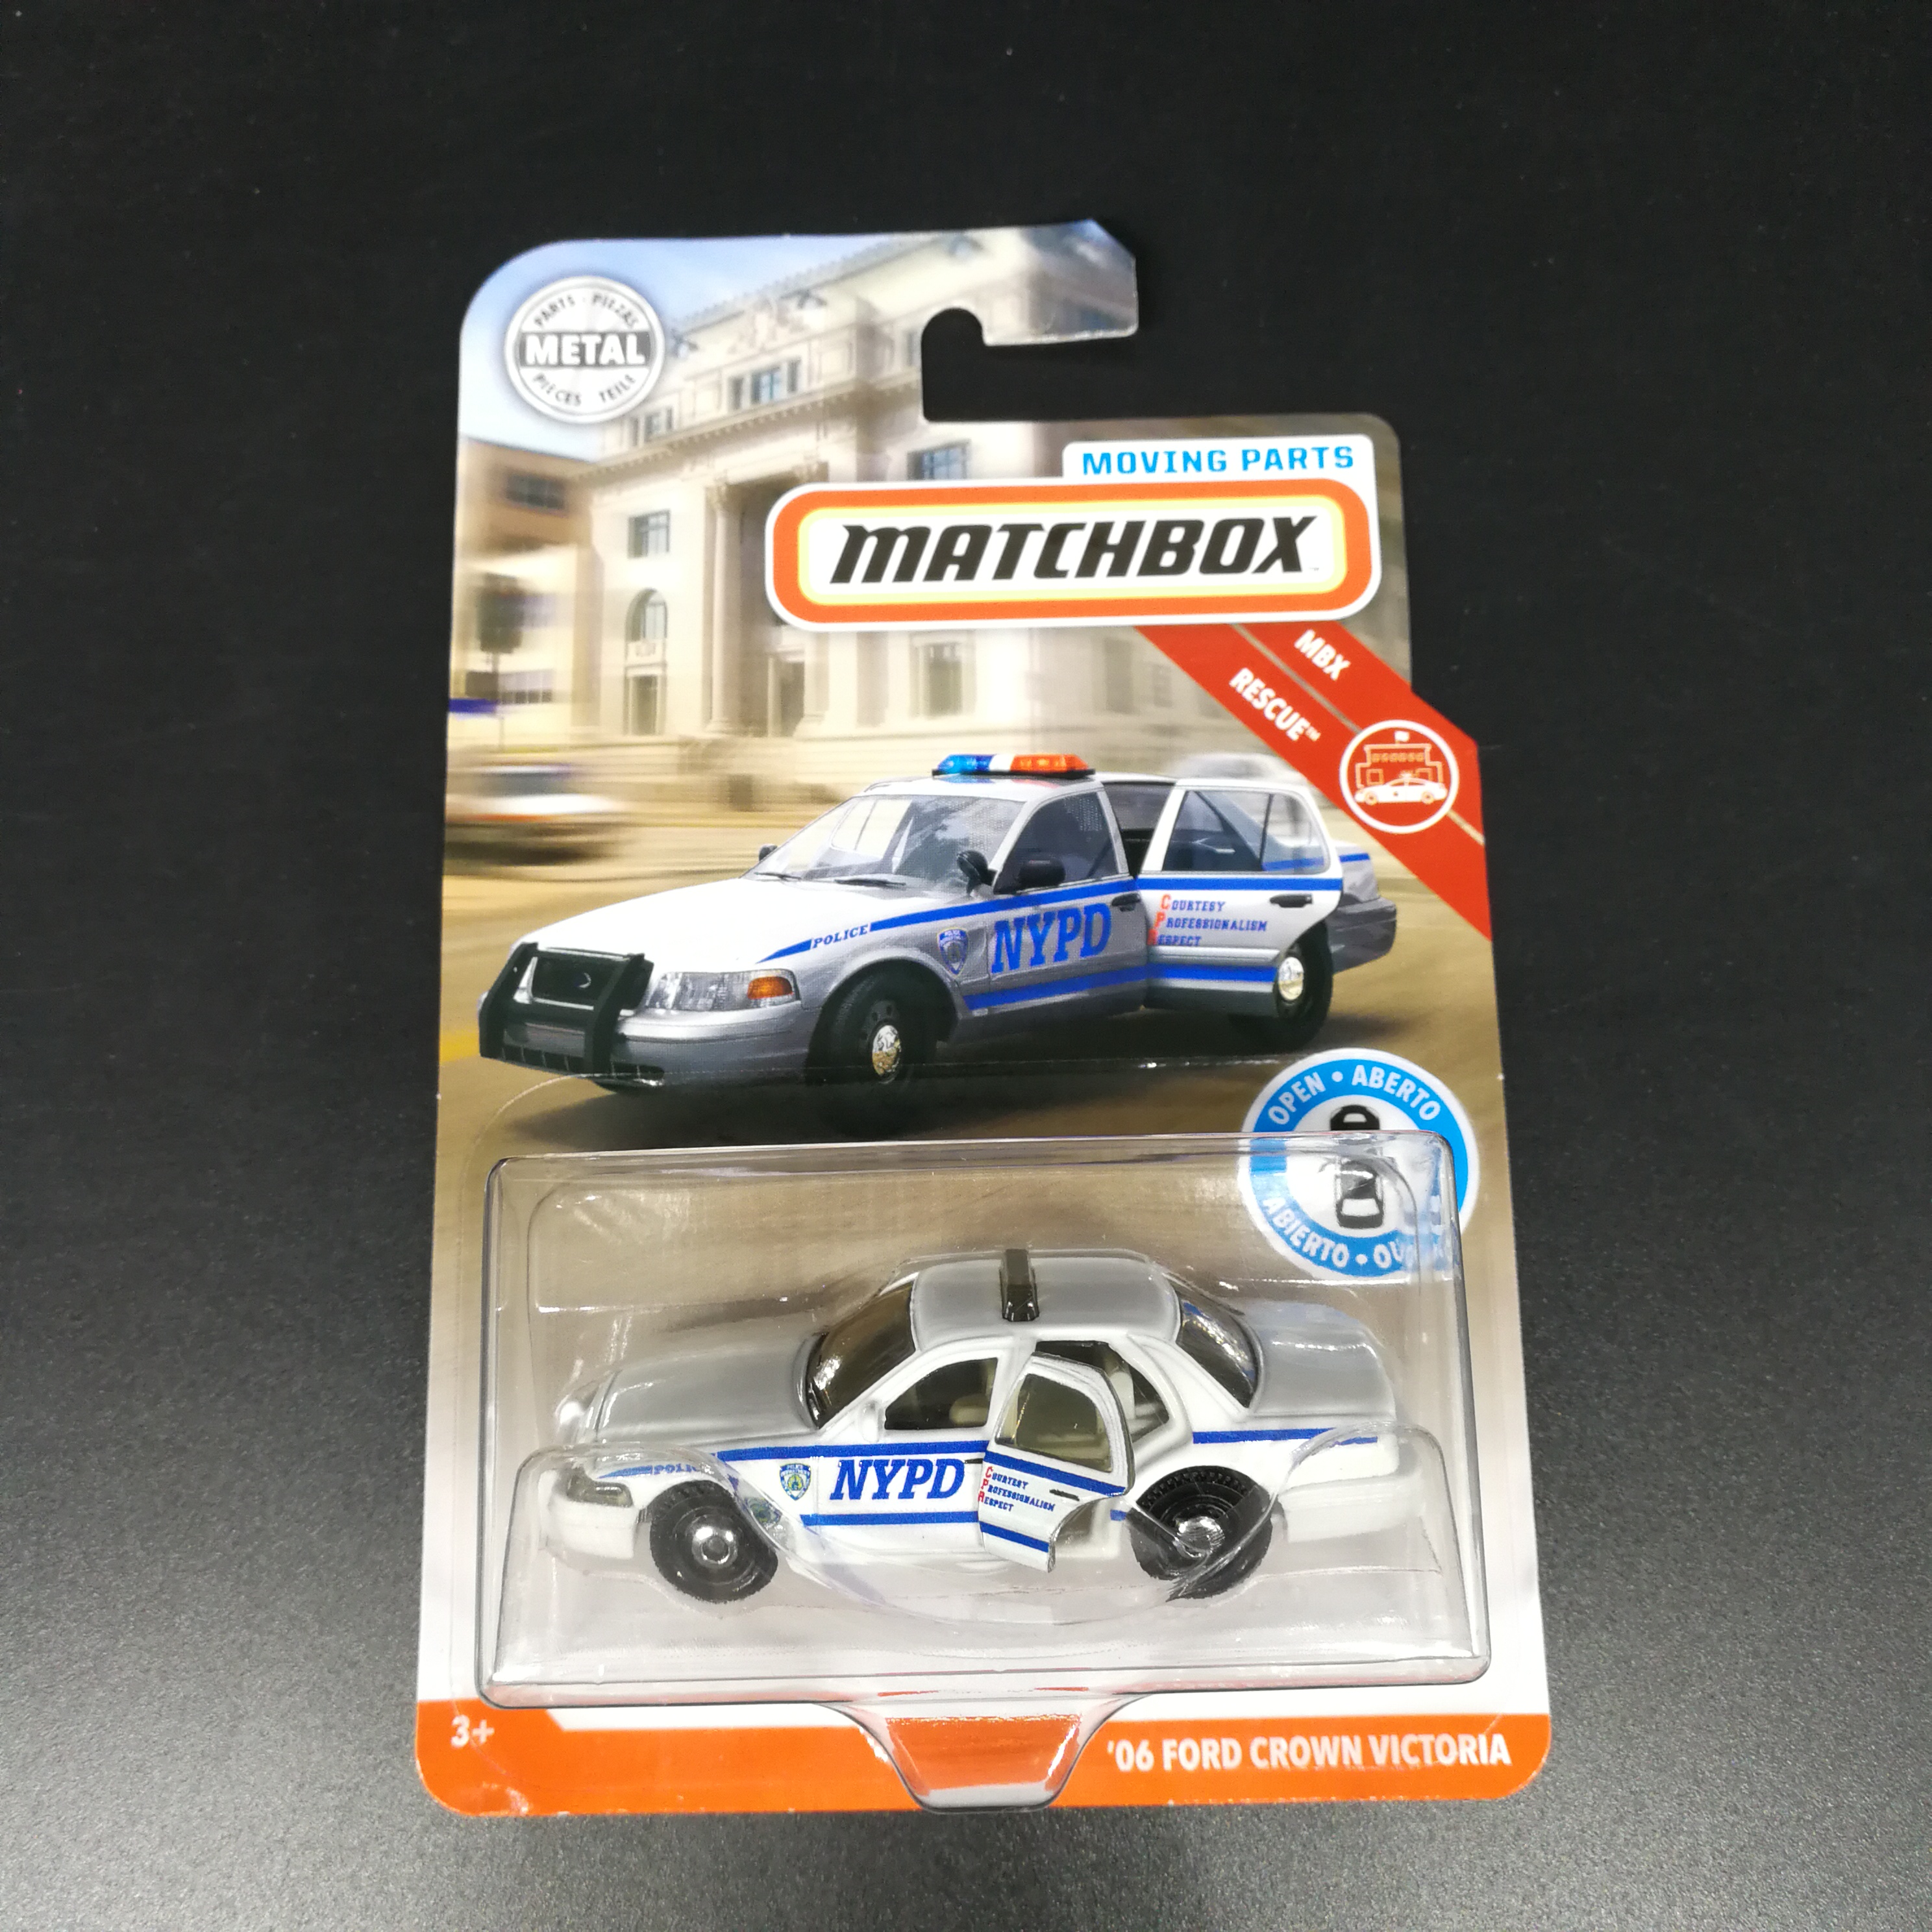 2019 Matchbox Car 06 FORD CROWN VICTORIA TESLA MODEL X Door Openable Metal Diecast Model Car Collector Edition Toys